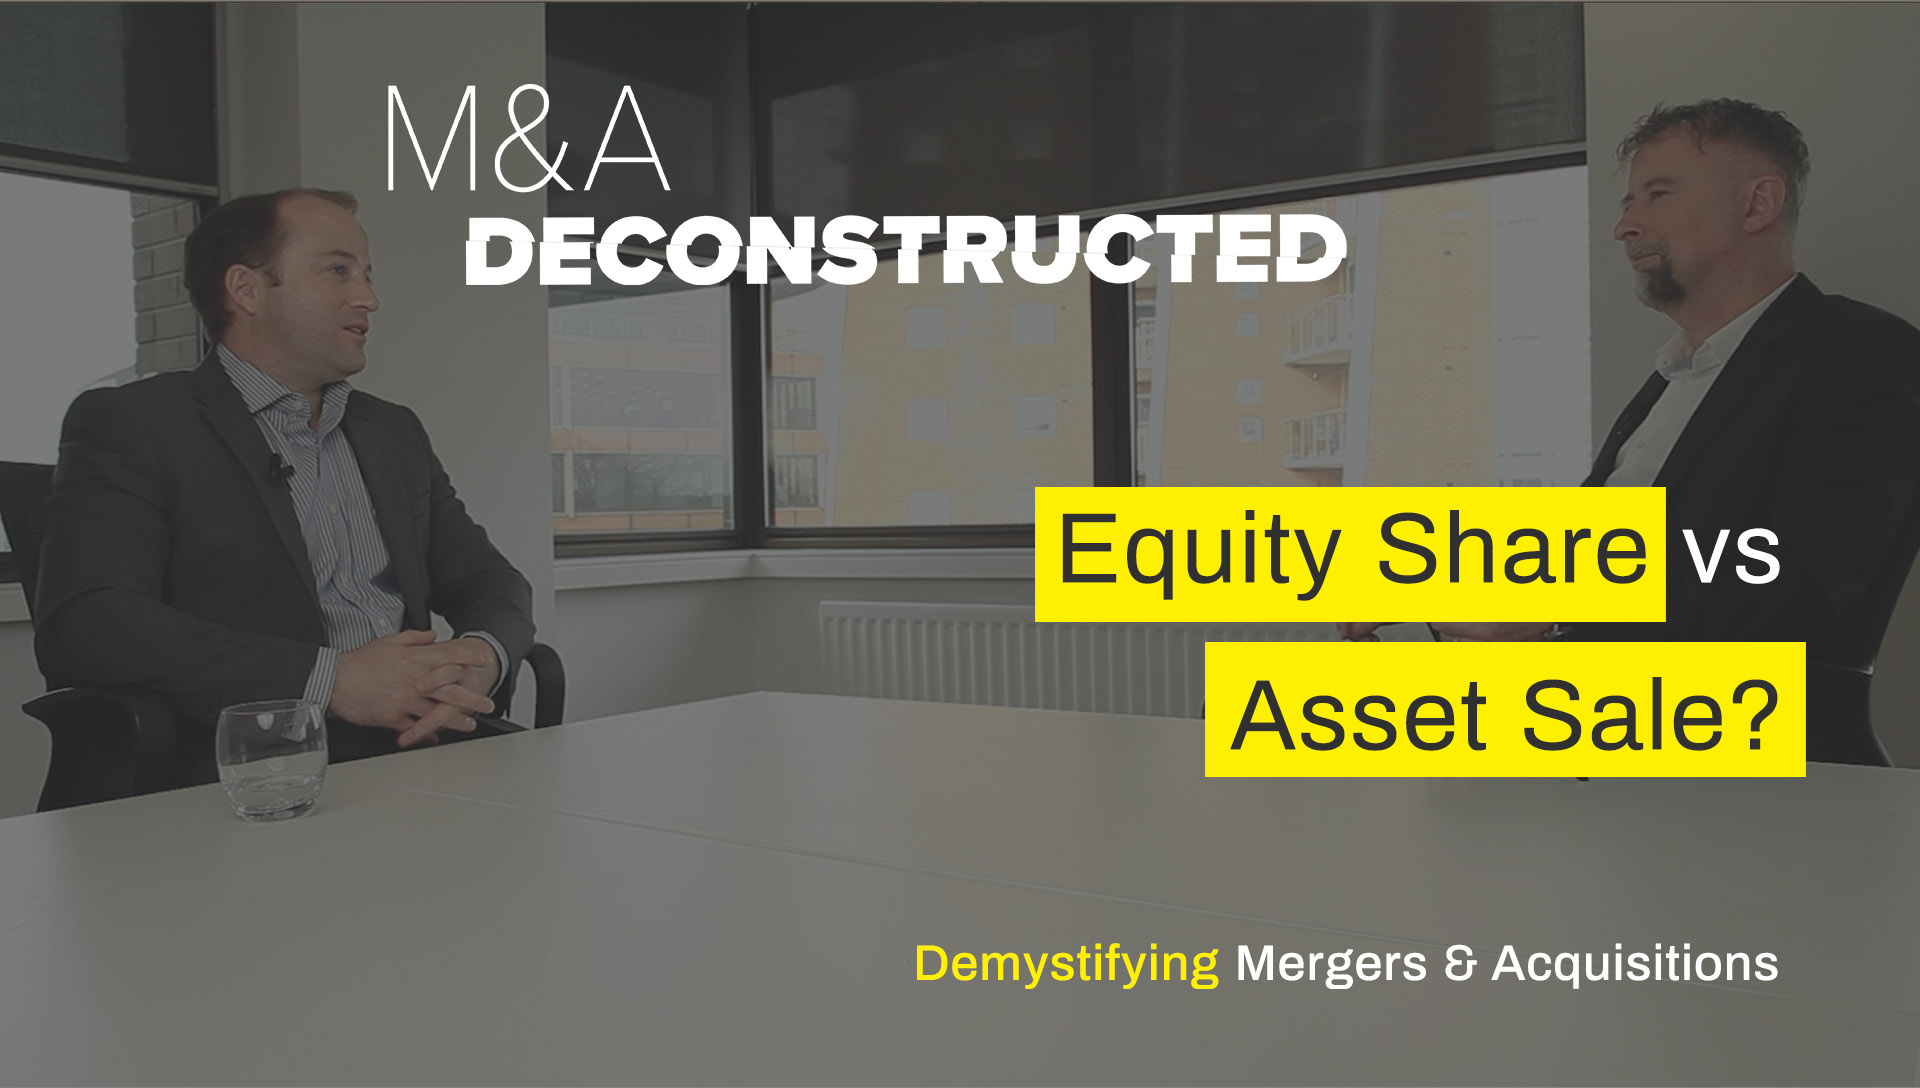 M&A Deconstructed - Equity Share vs Asset Sale?